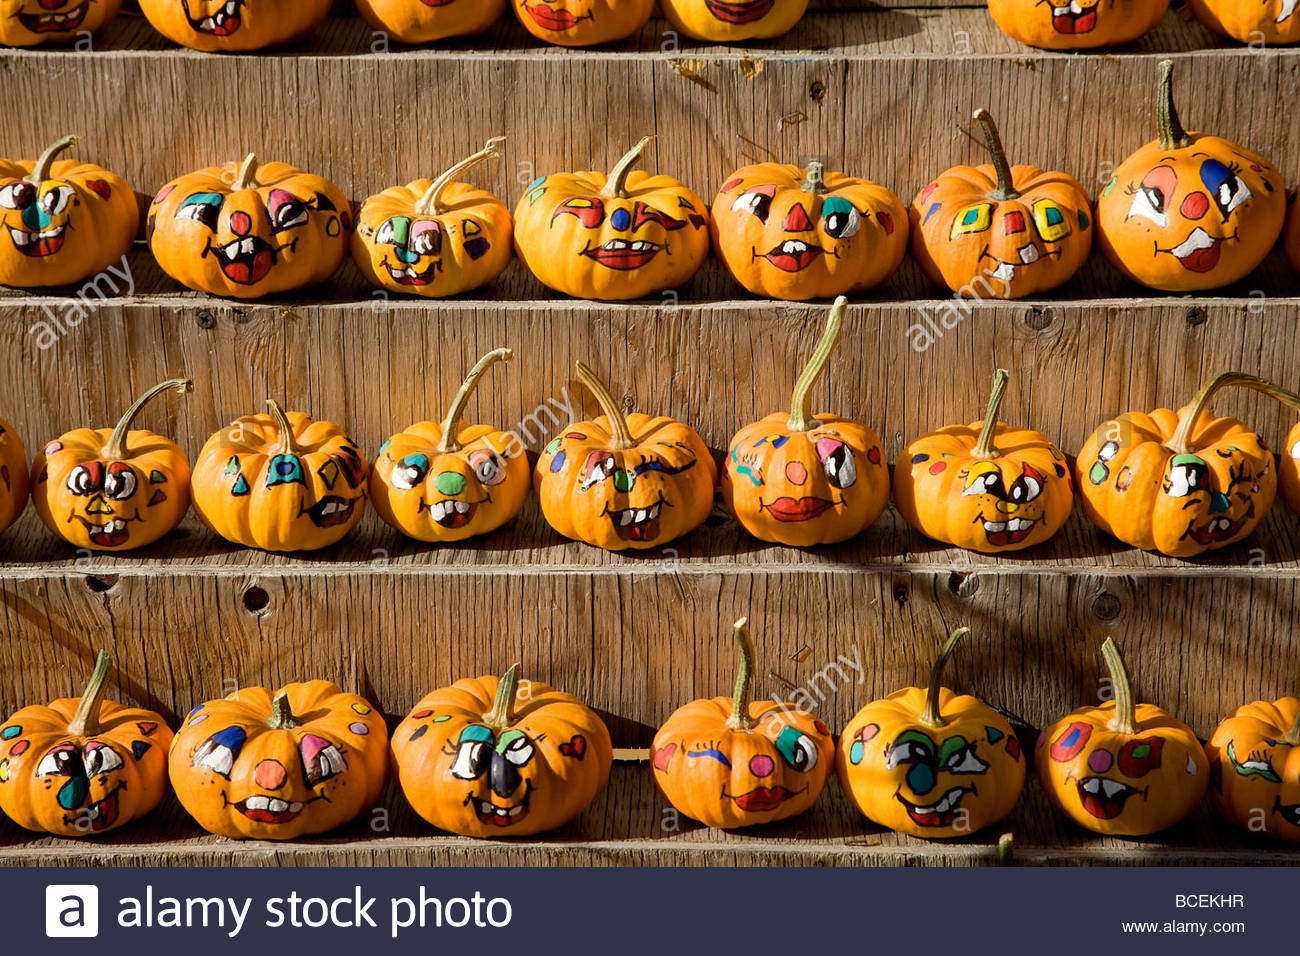 Rows of small pumpkins with painted faces are for sale at a market. - Stock Image